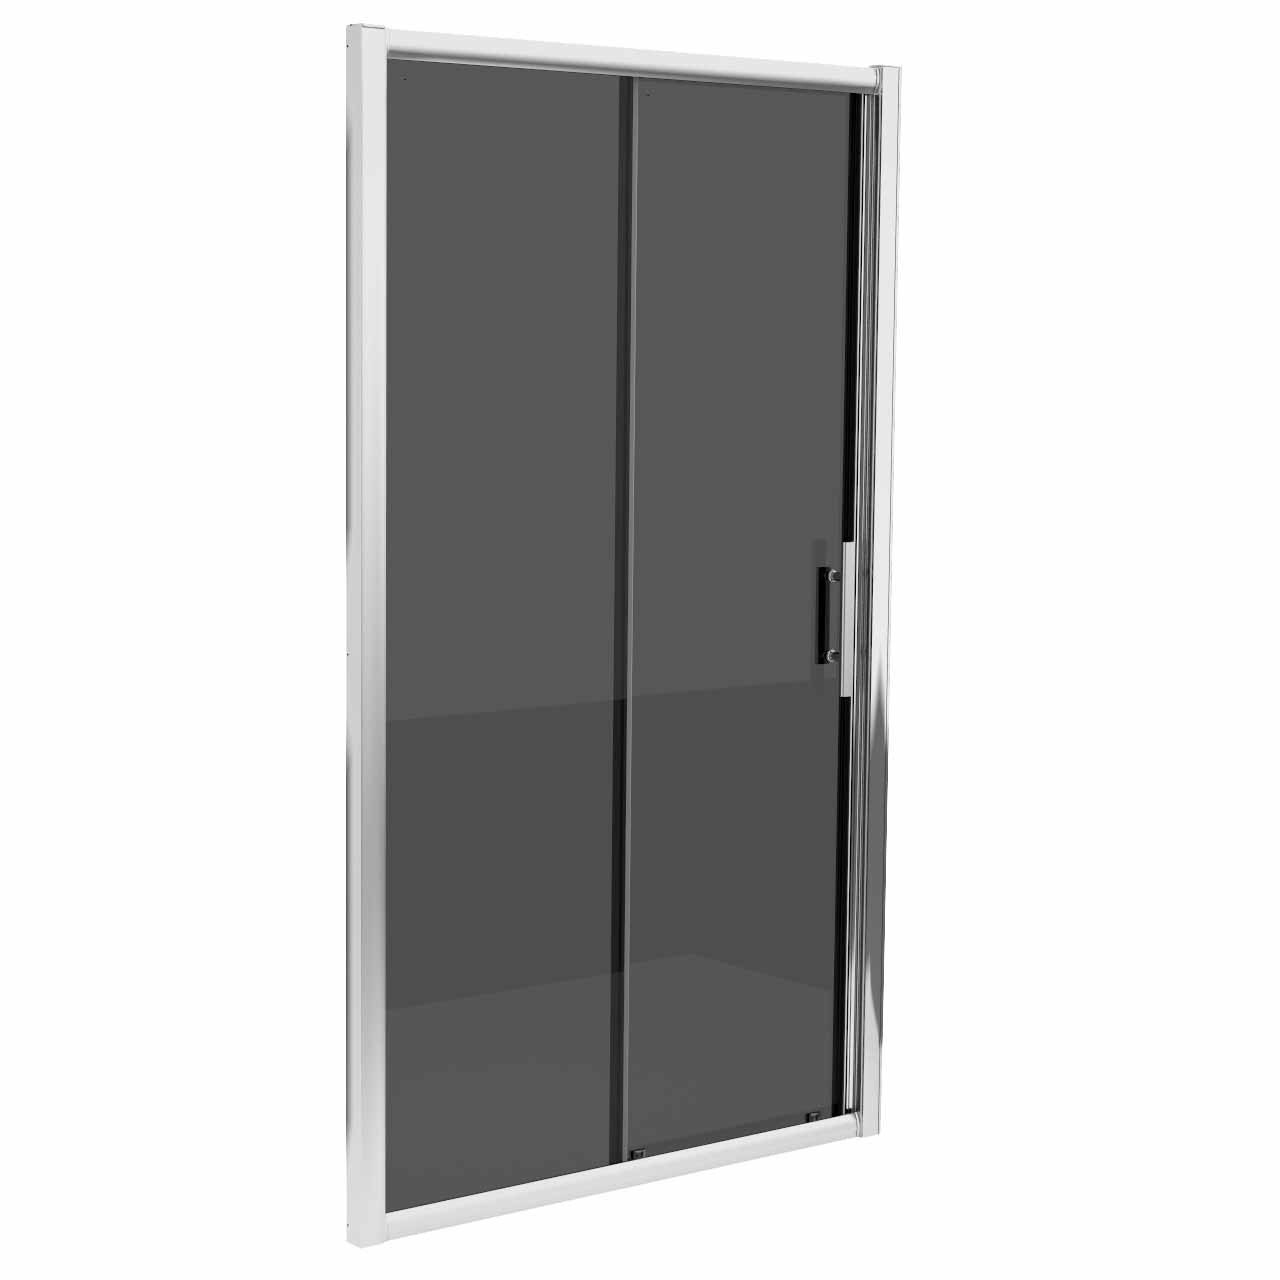 Series 9 1200 x 800 Tinted Sliding Door Enclosure